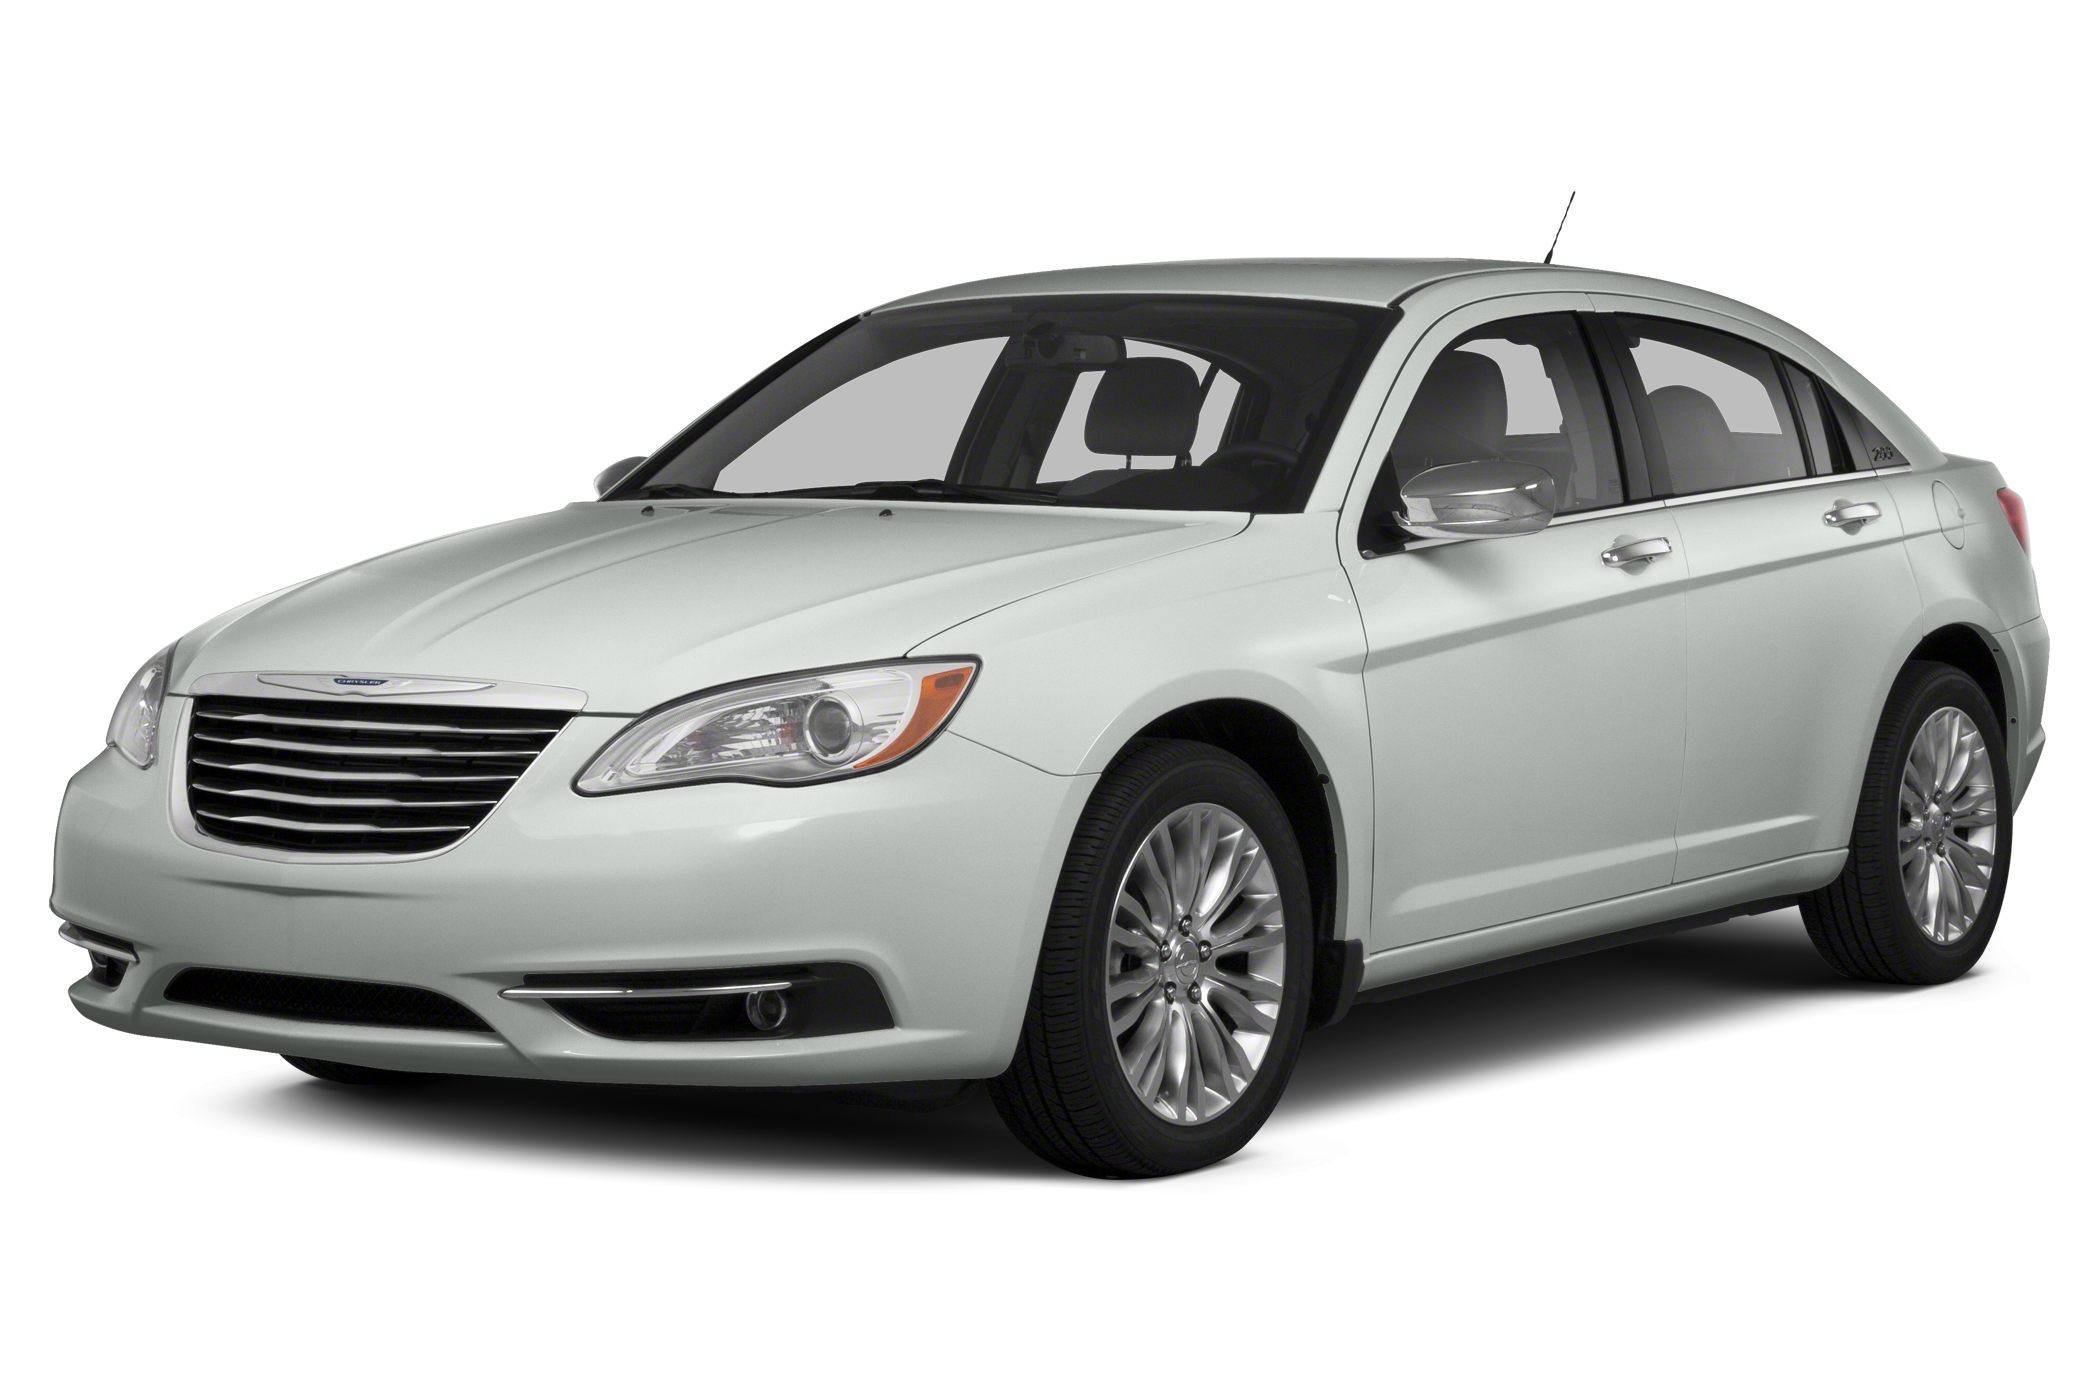 2014 Chrysler 200 Touring Vehicle Detailed Recent Oil Change and Passed Dealer Inspection Stabi